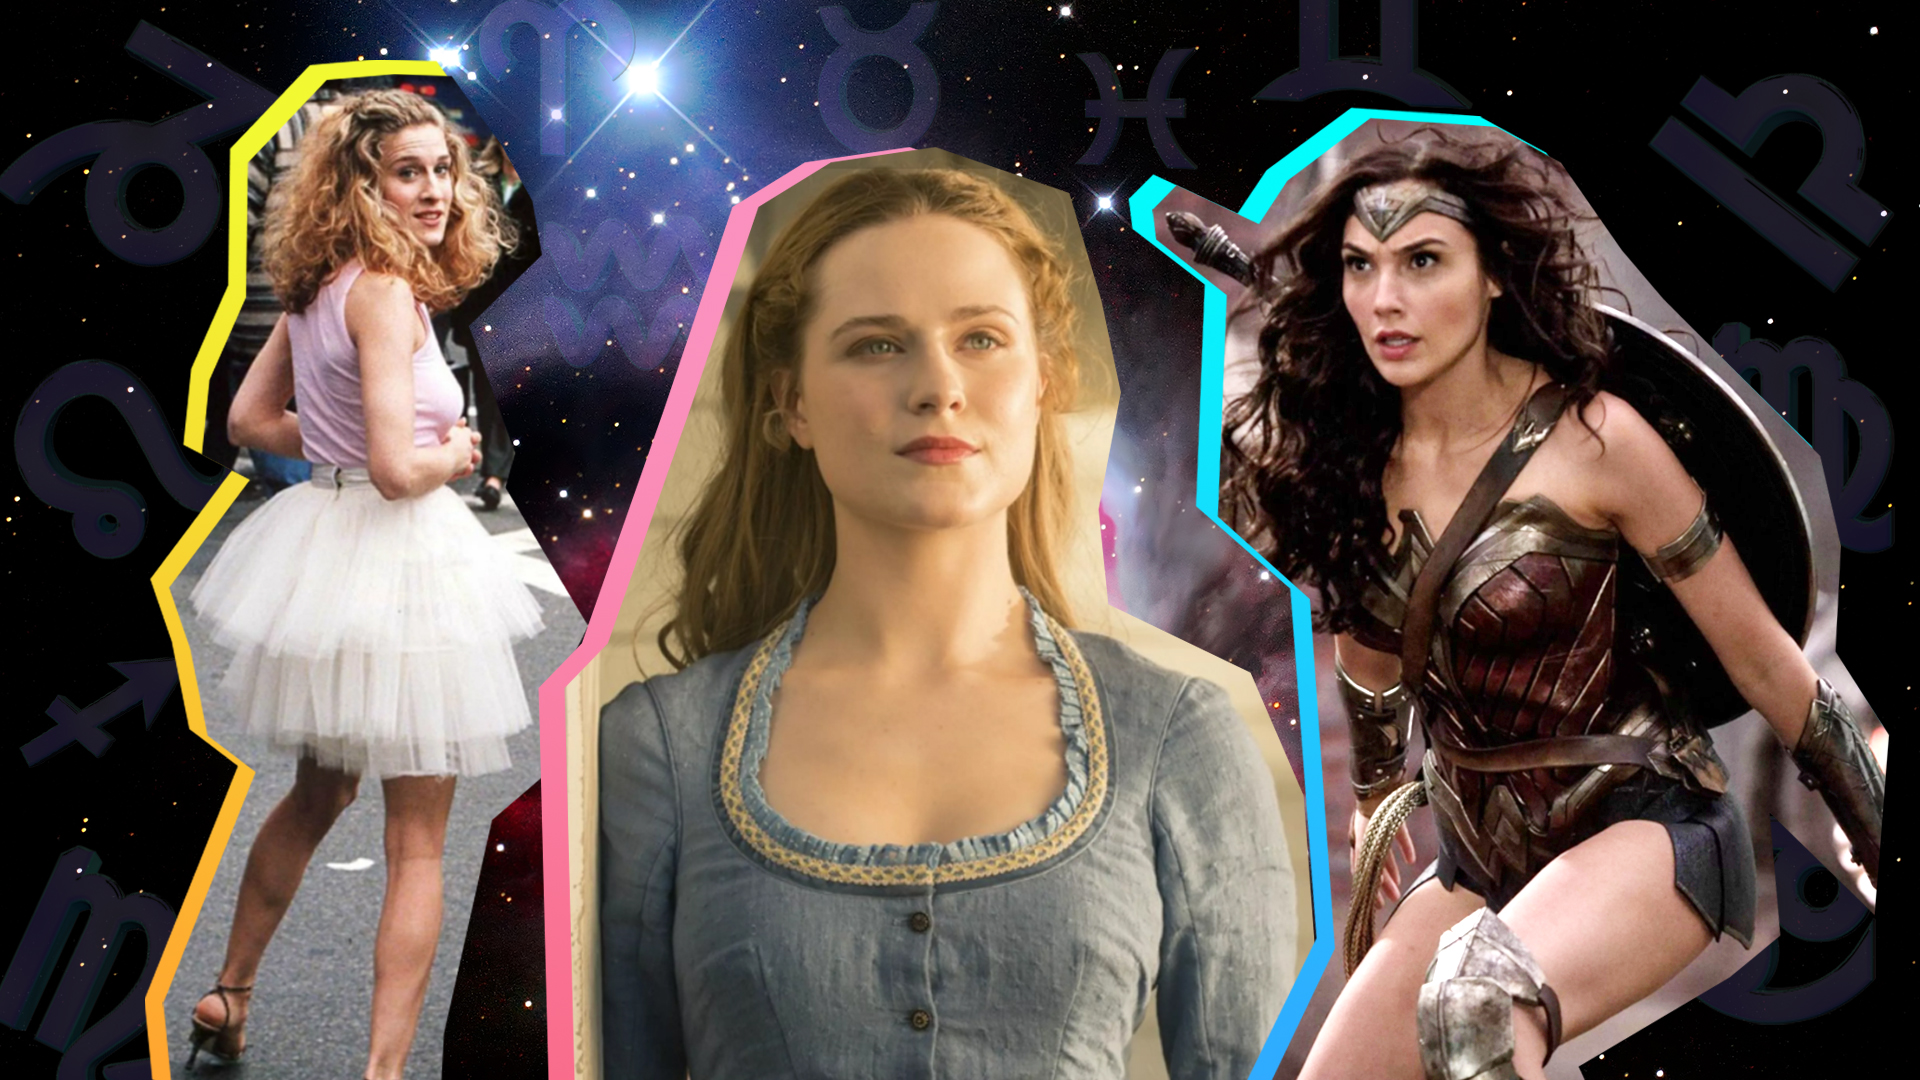 Which Celebrity Halloween Costume You Should Rock Based On